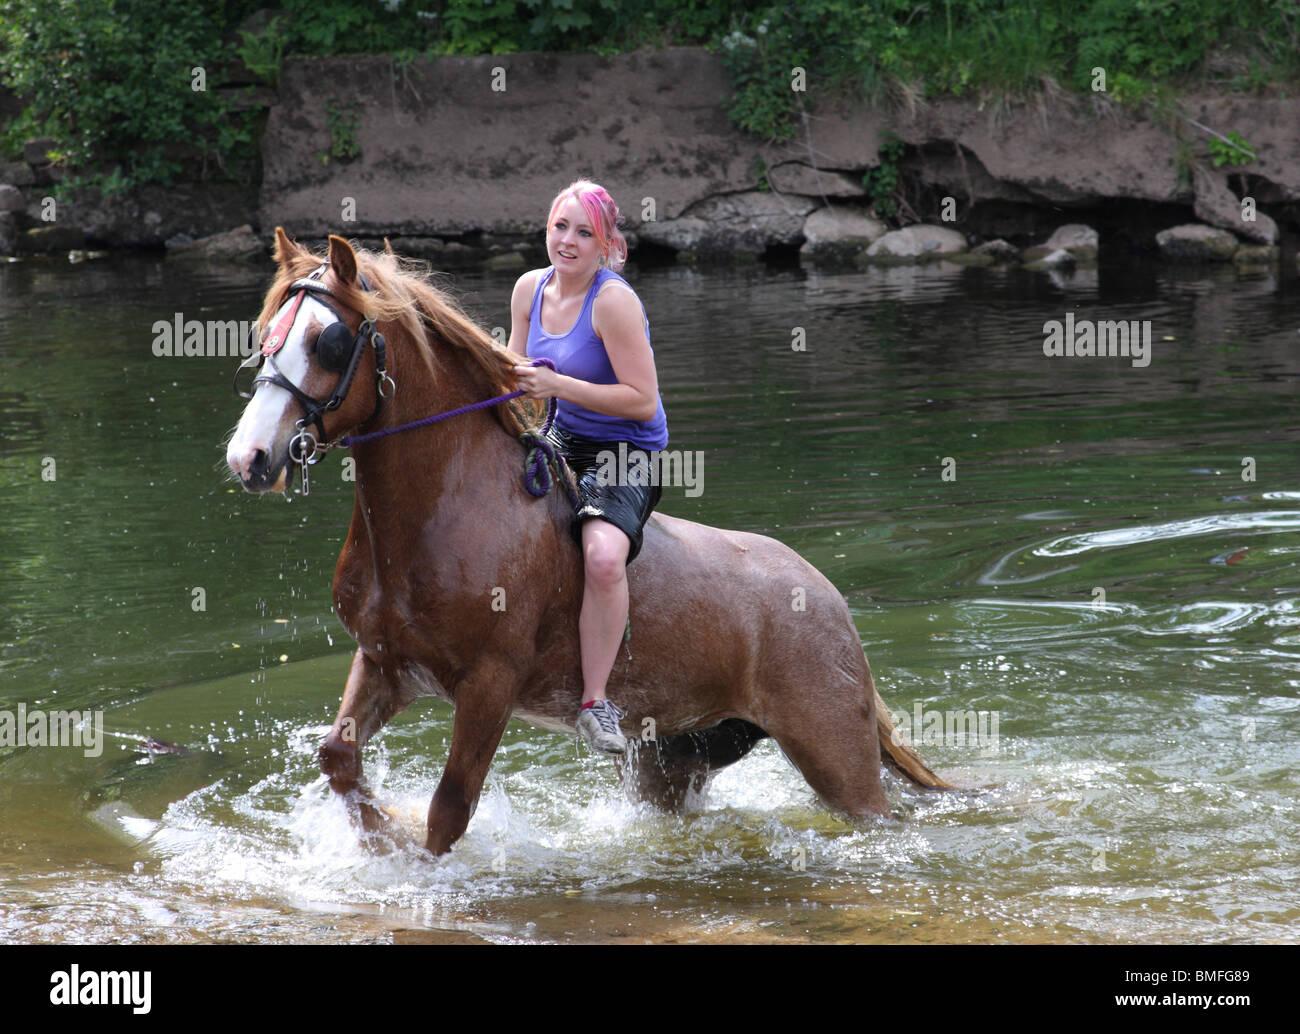 A gypsy girl swimming a horse at the Appleby Horse Fair Stock ...